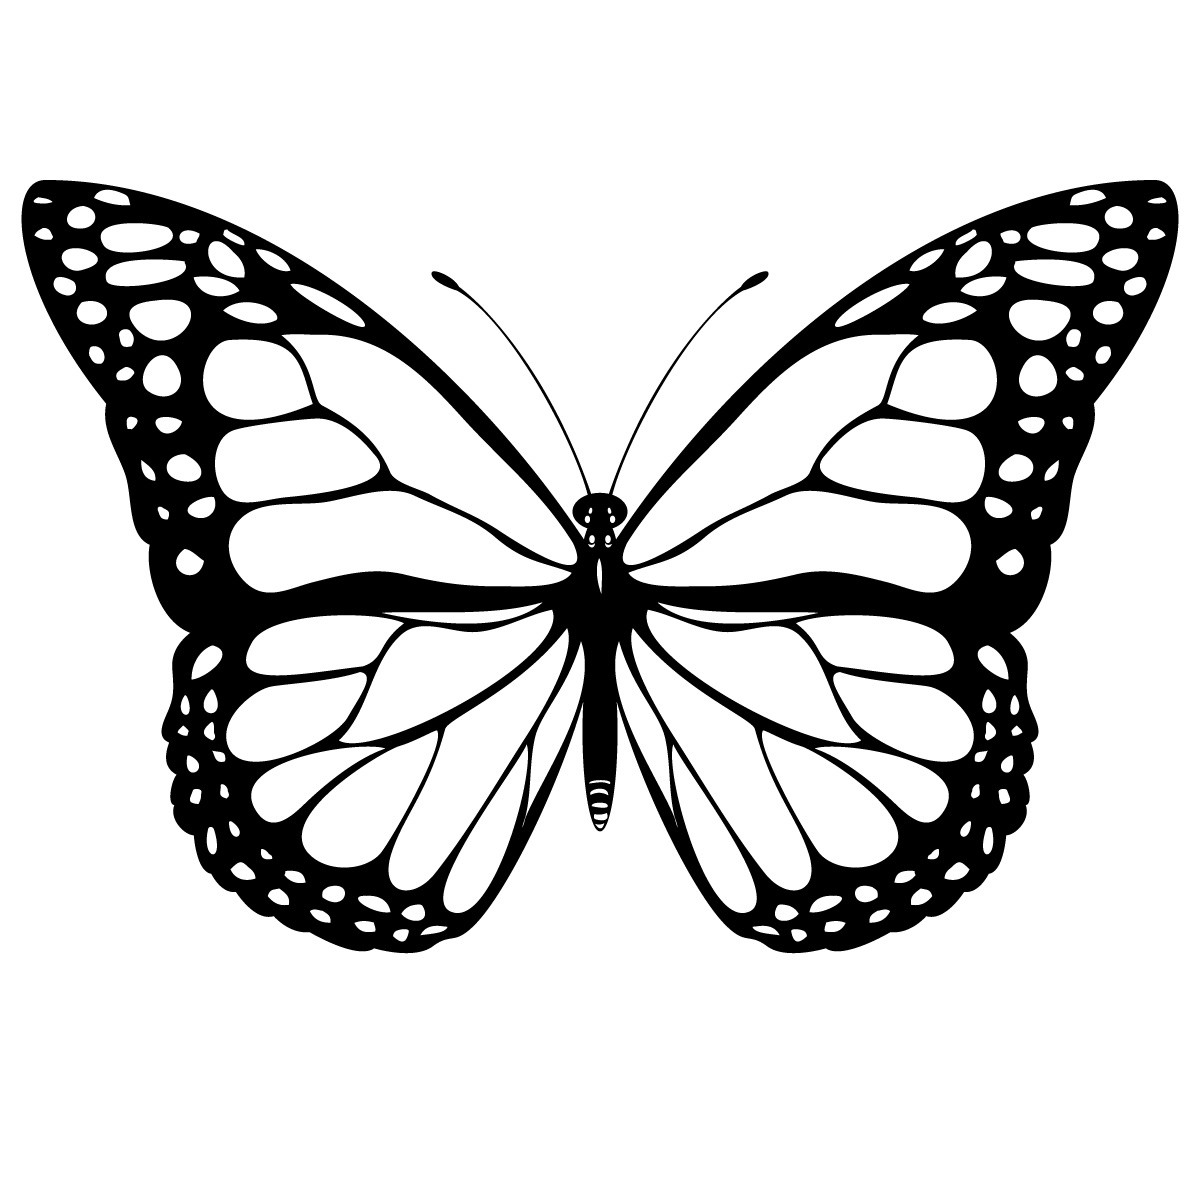 coloring pages for kids butterfly butterfly coloring pages for kids butterfly pages for kids coloring